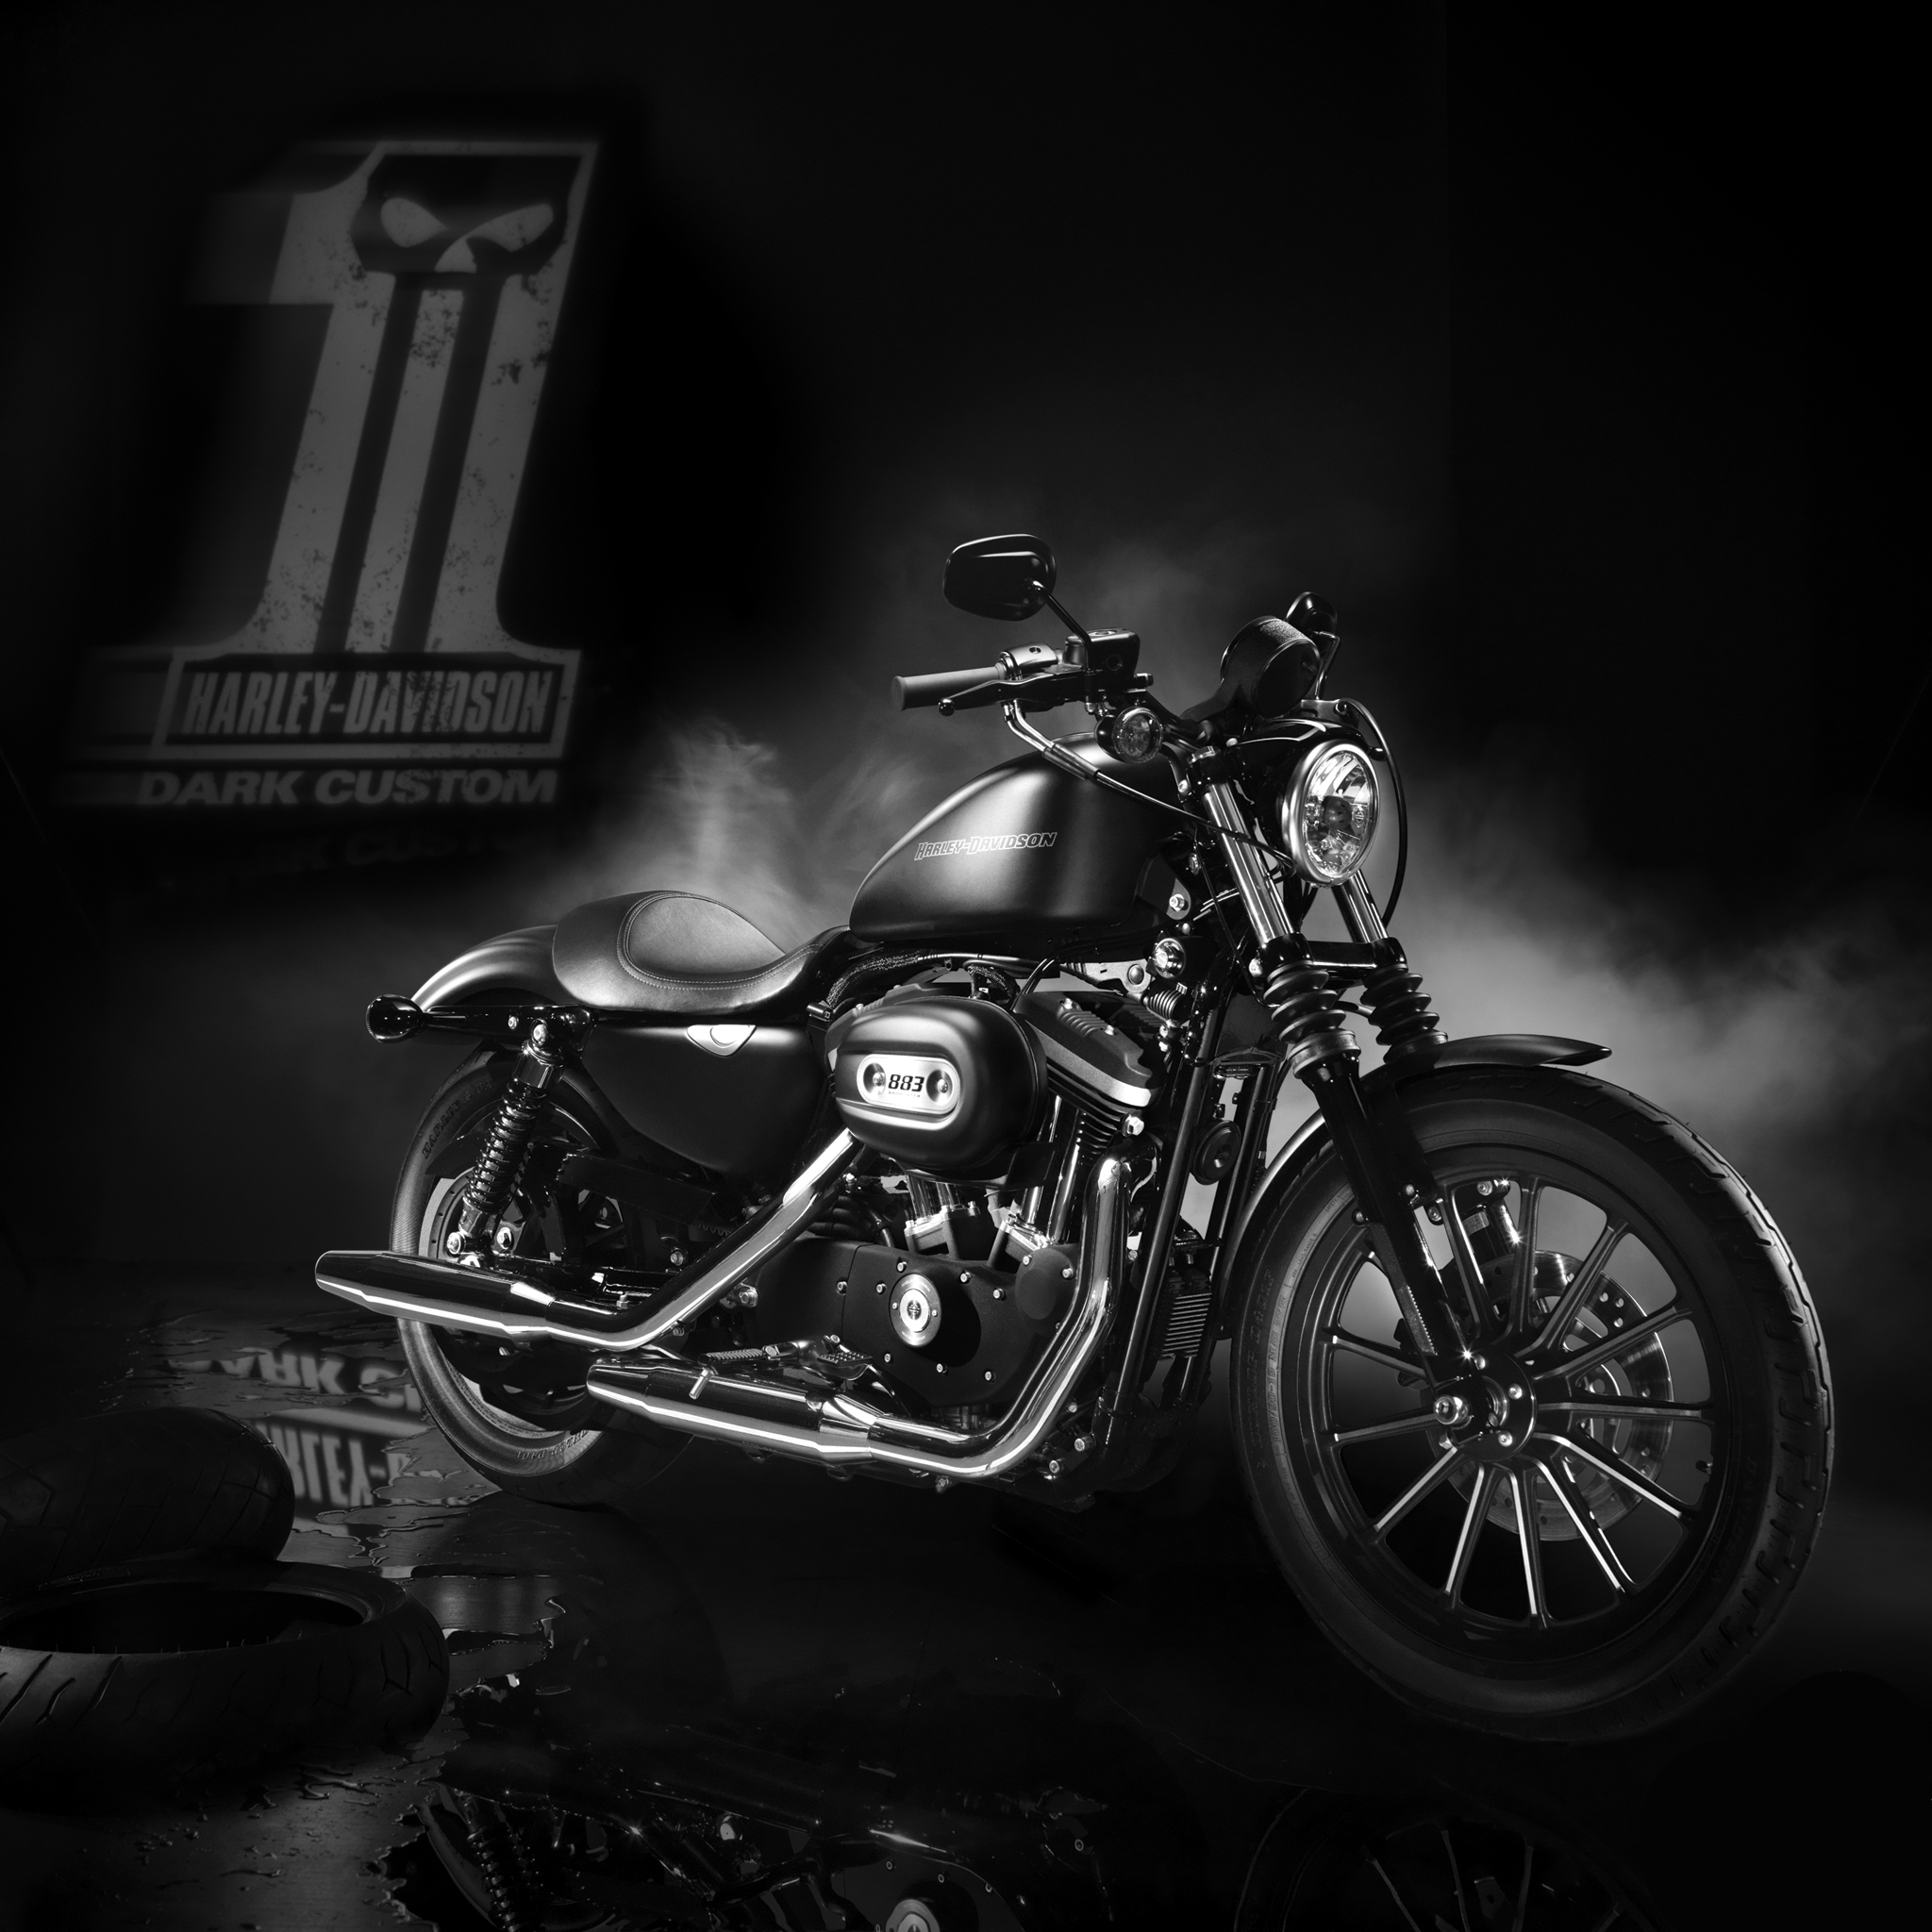 Harley-Davidson-Dark-Custom-3Wallpapers-iPad-Retina